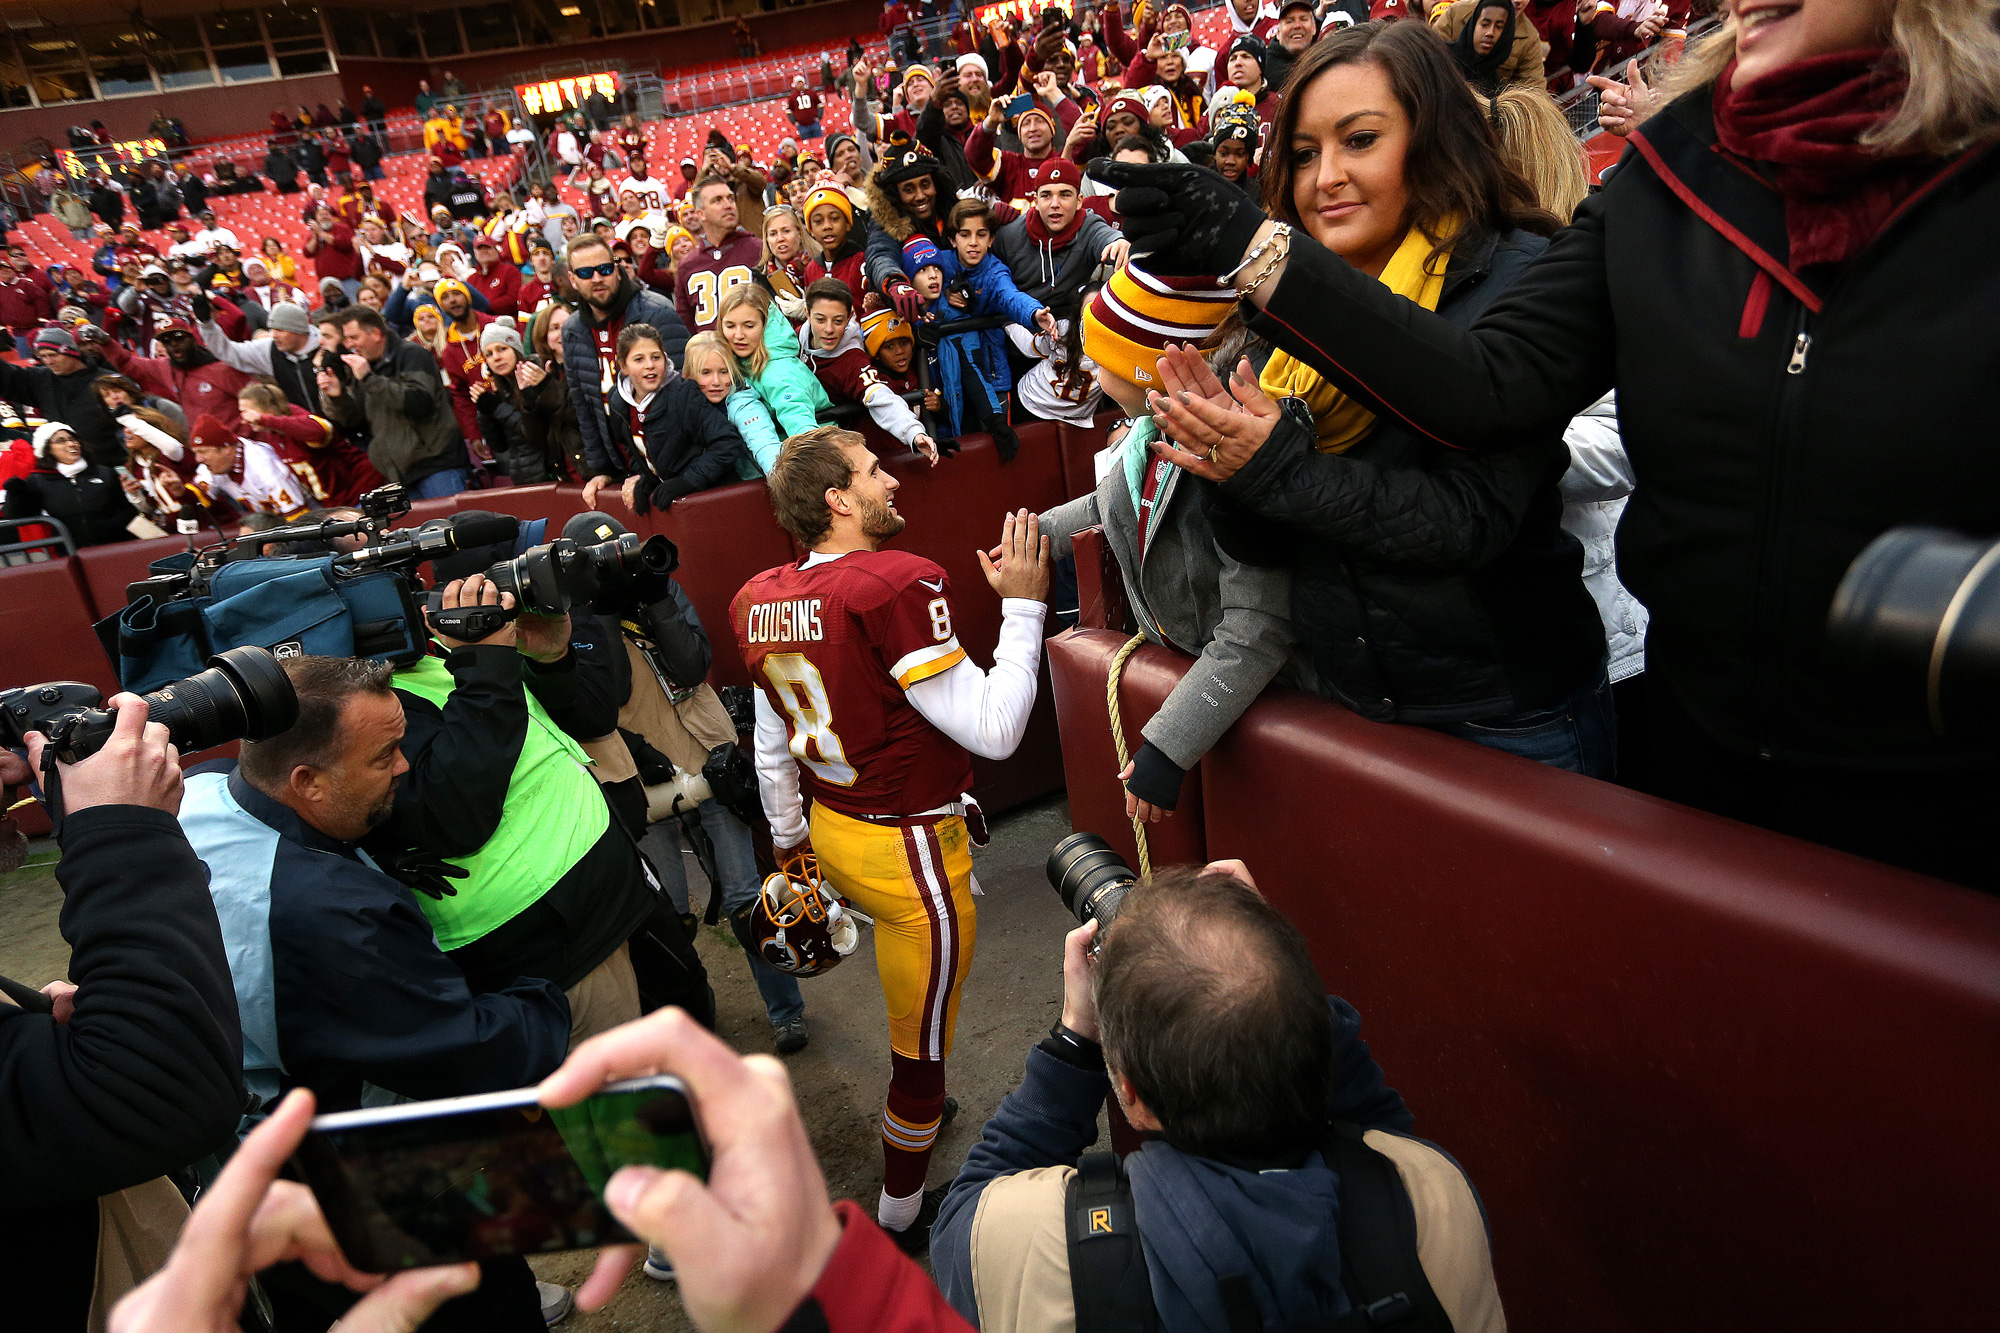 Quarterback Kirk Cousins #8 of the Washington Redskins celebrates with fans after the Washington Redskins defeated the Buffalo Bills 35-25 at FedExField on December 20, 2015 in Landover, Maryland.